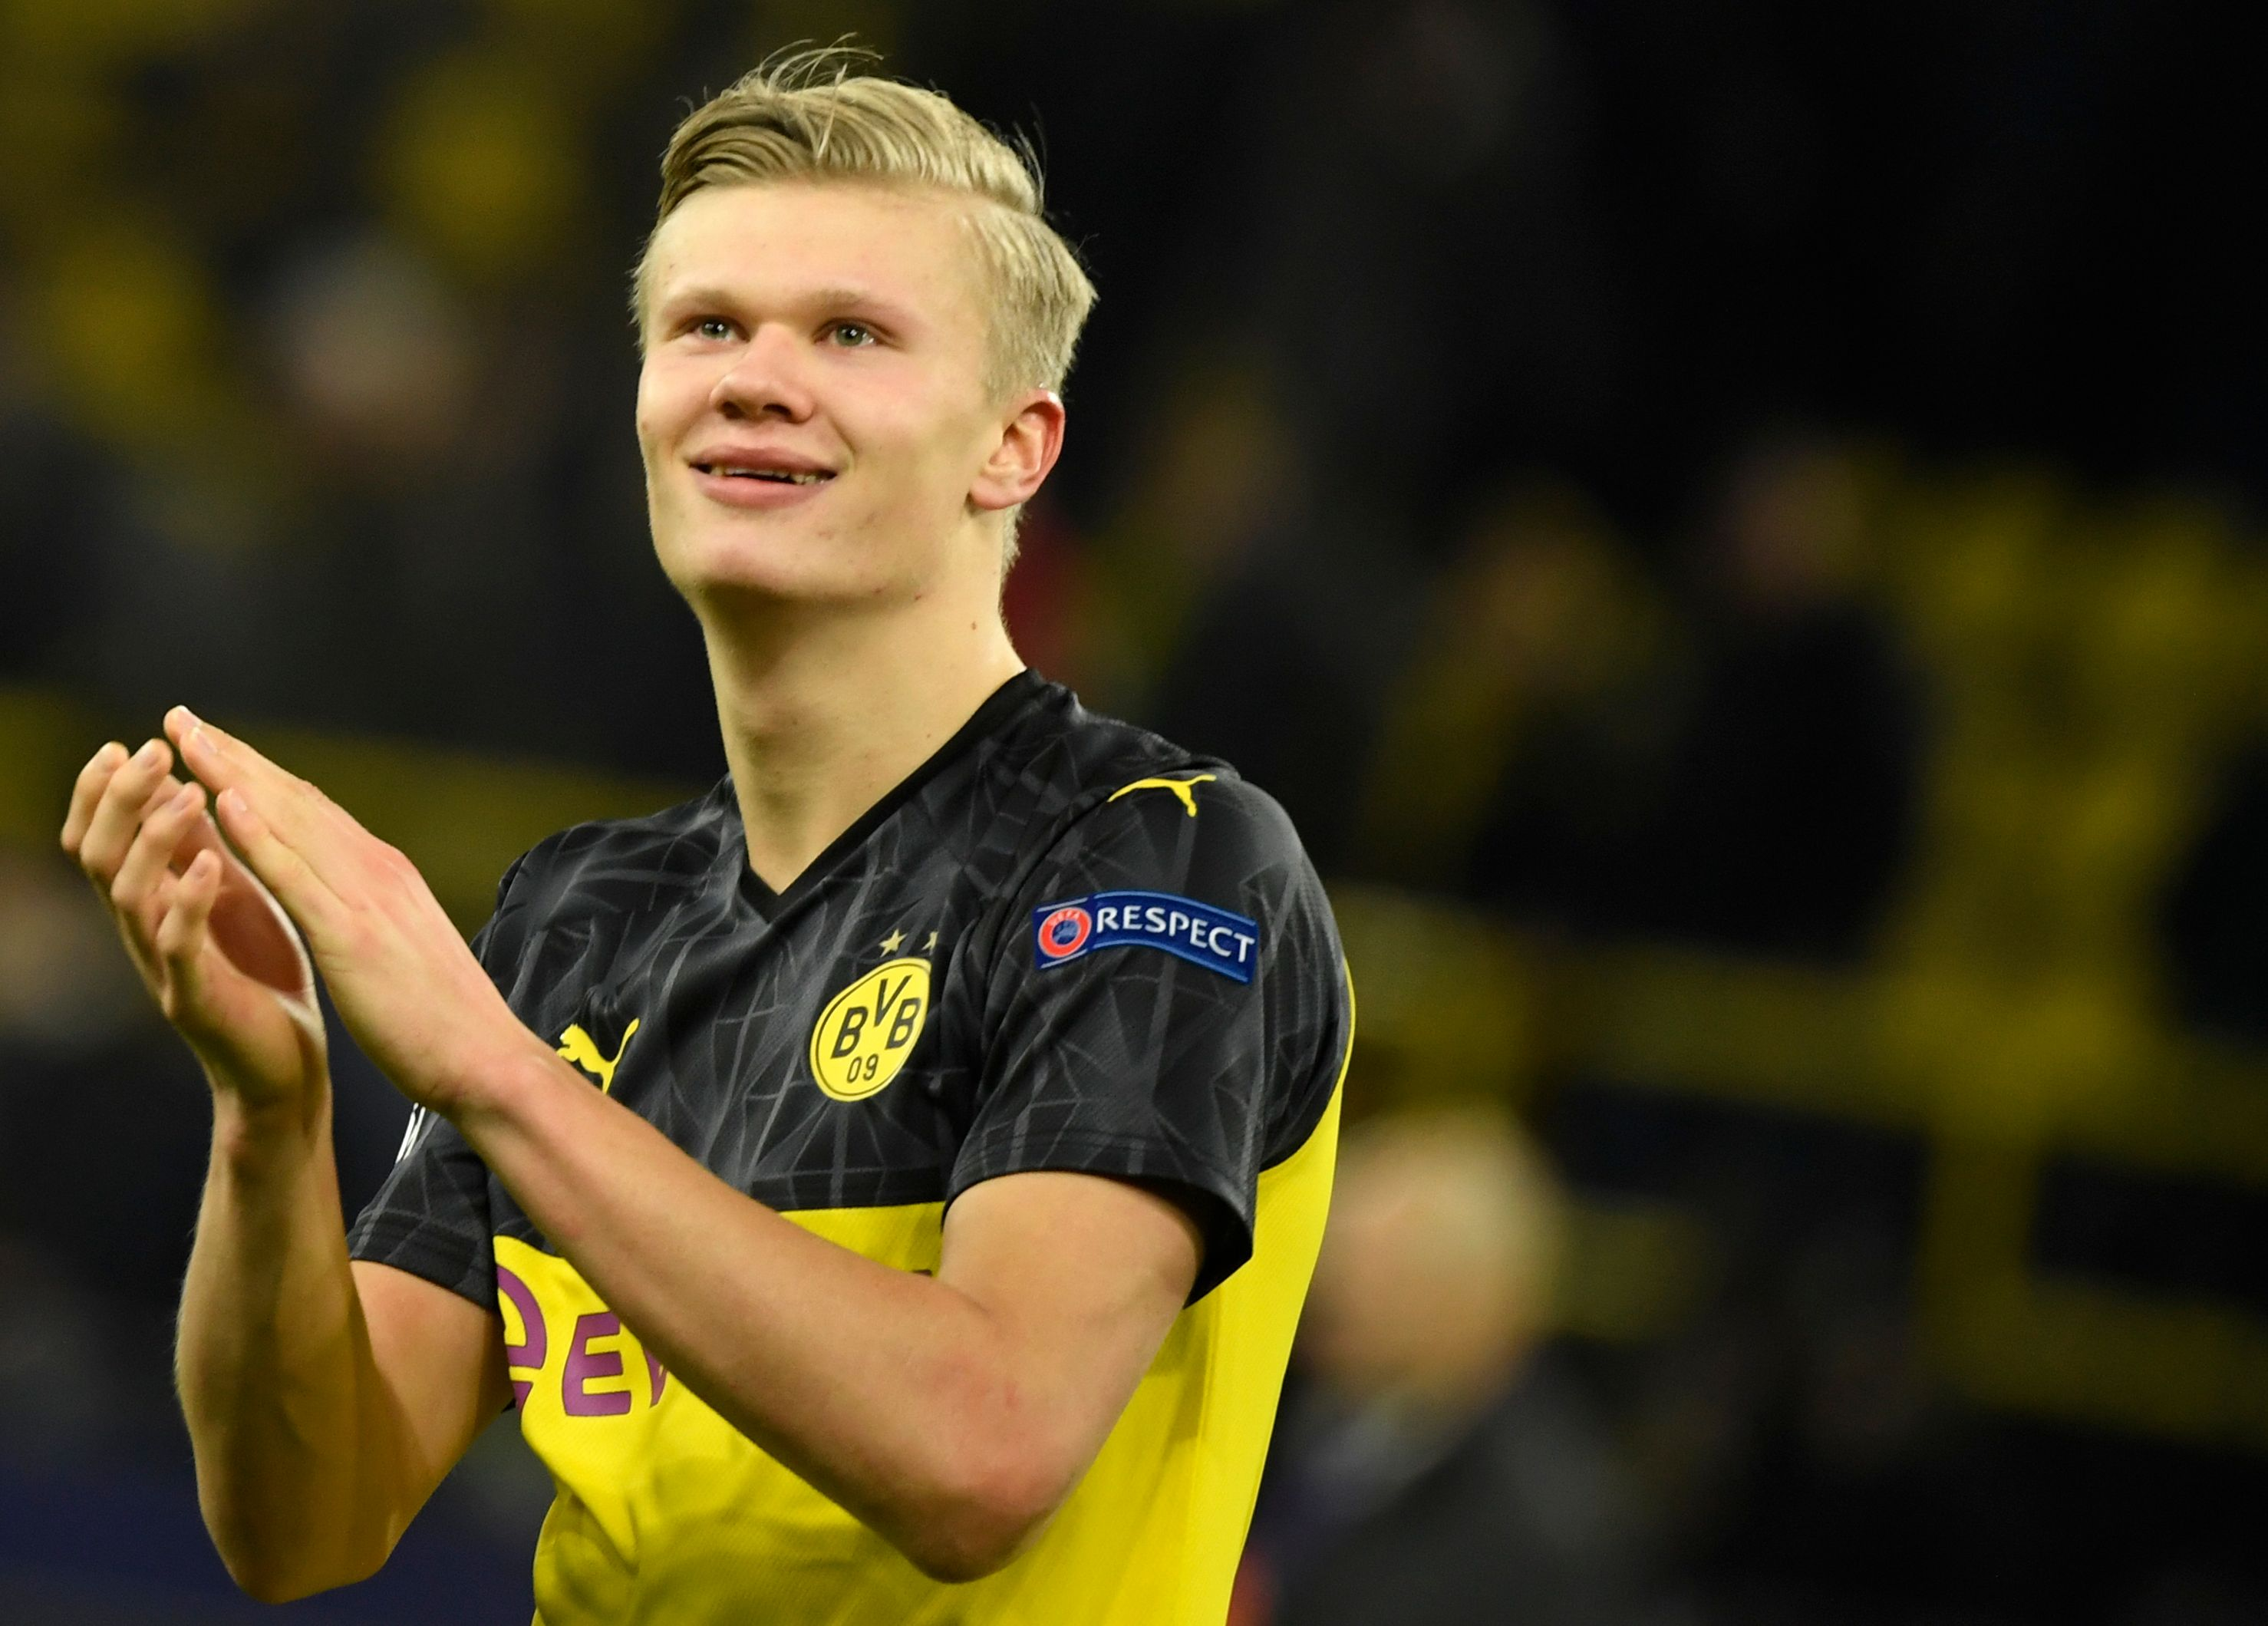 Erling Braut Haaland 9 Stats That Show What A Remarkable Talent The Borussia Dortmund Striker Really Is